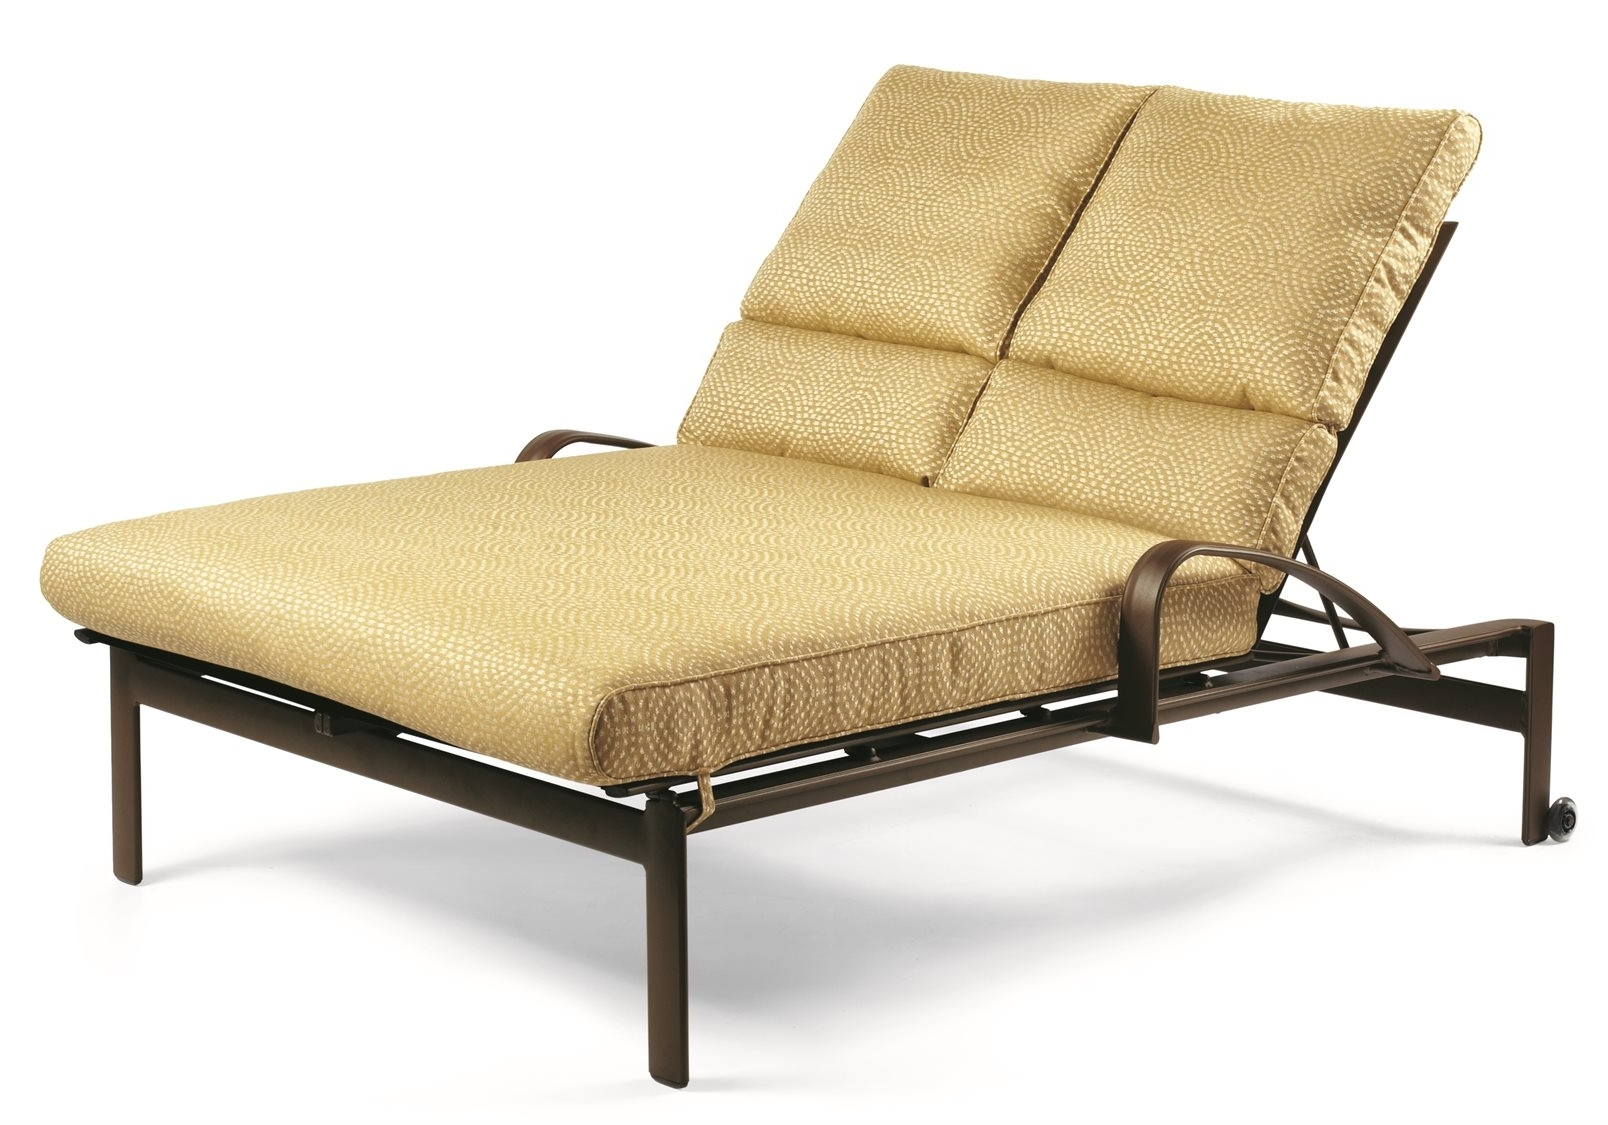 Double Chaise Lounge Cushion With Regard To Trendy Garden Bench Cushion Replacement Sun Lounger Cushions Outdoor (View 7 of 15)